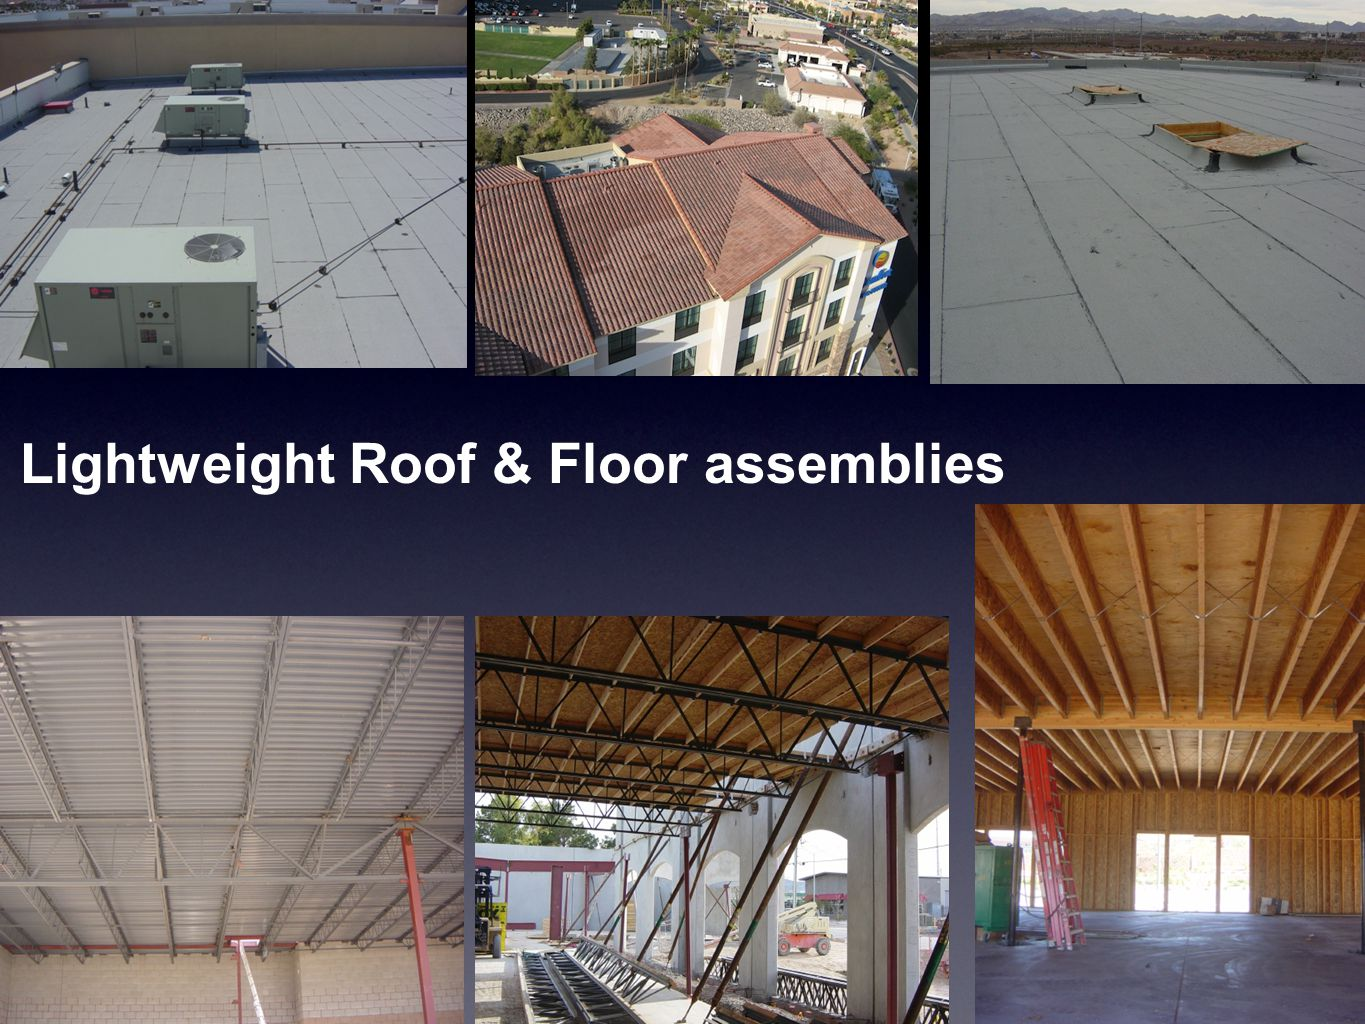 Lightweight Roof & Floor assemblies